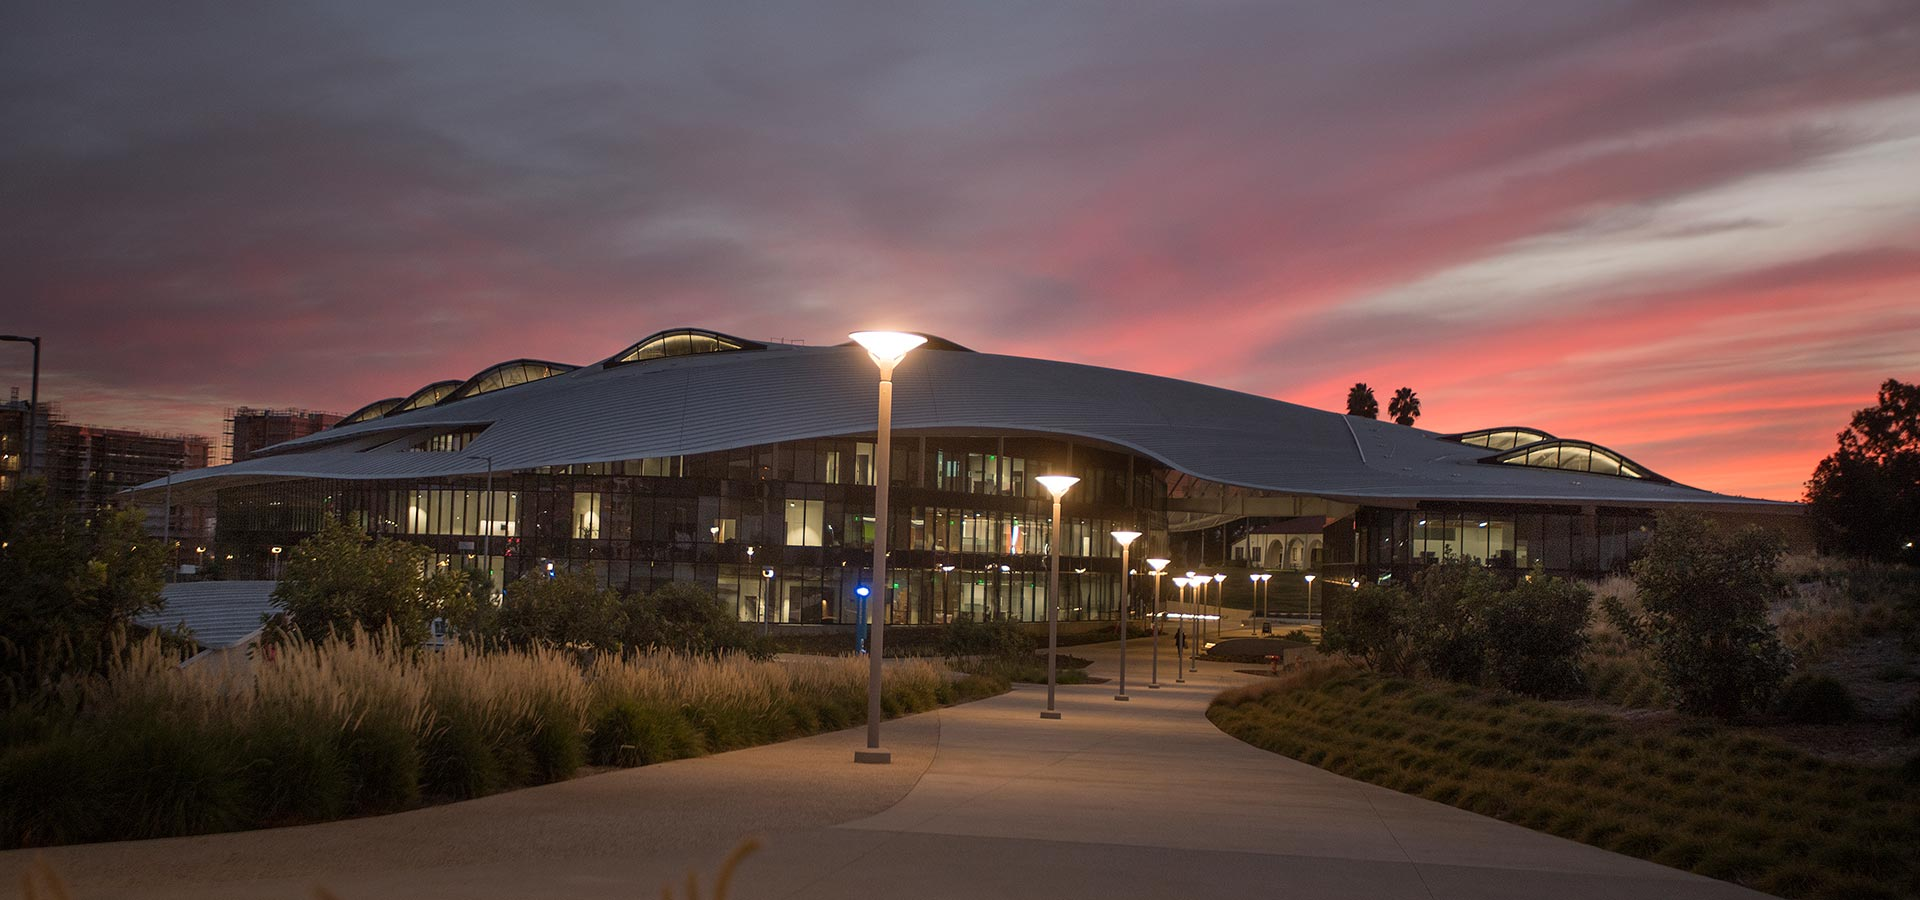 Student Services Building at Sunset